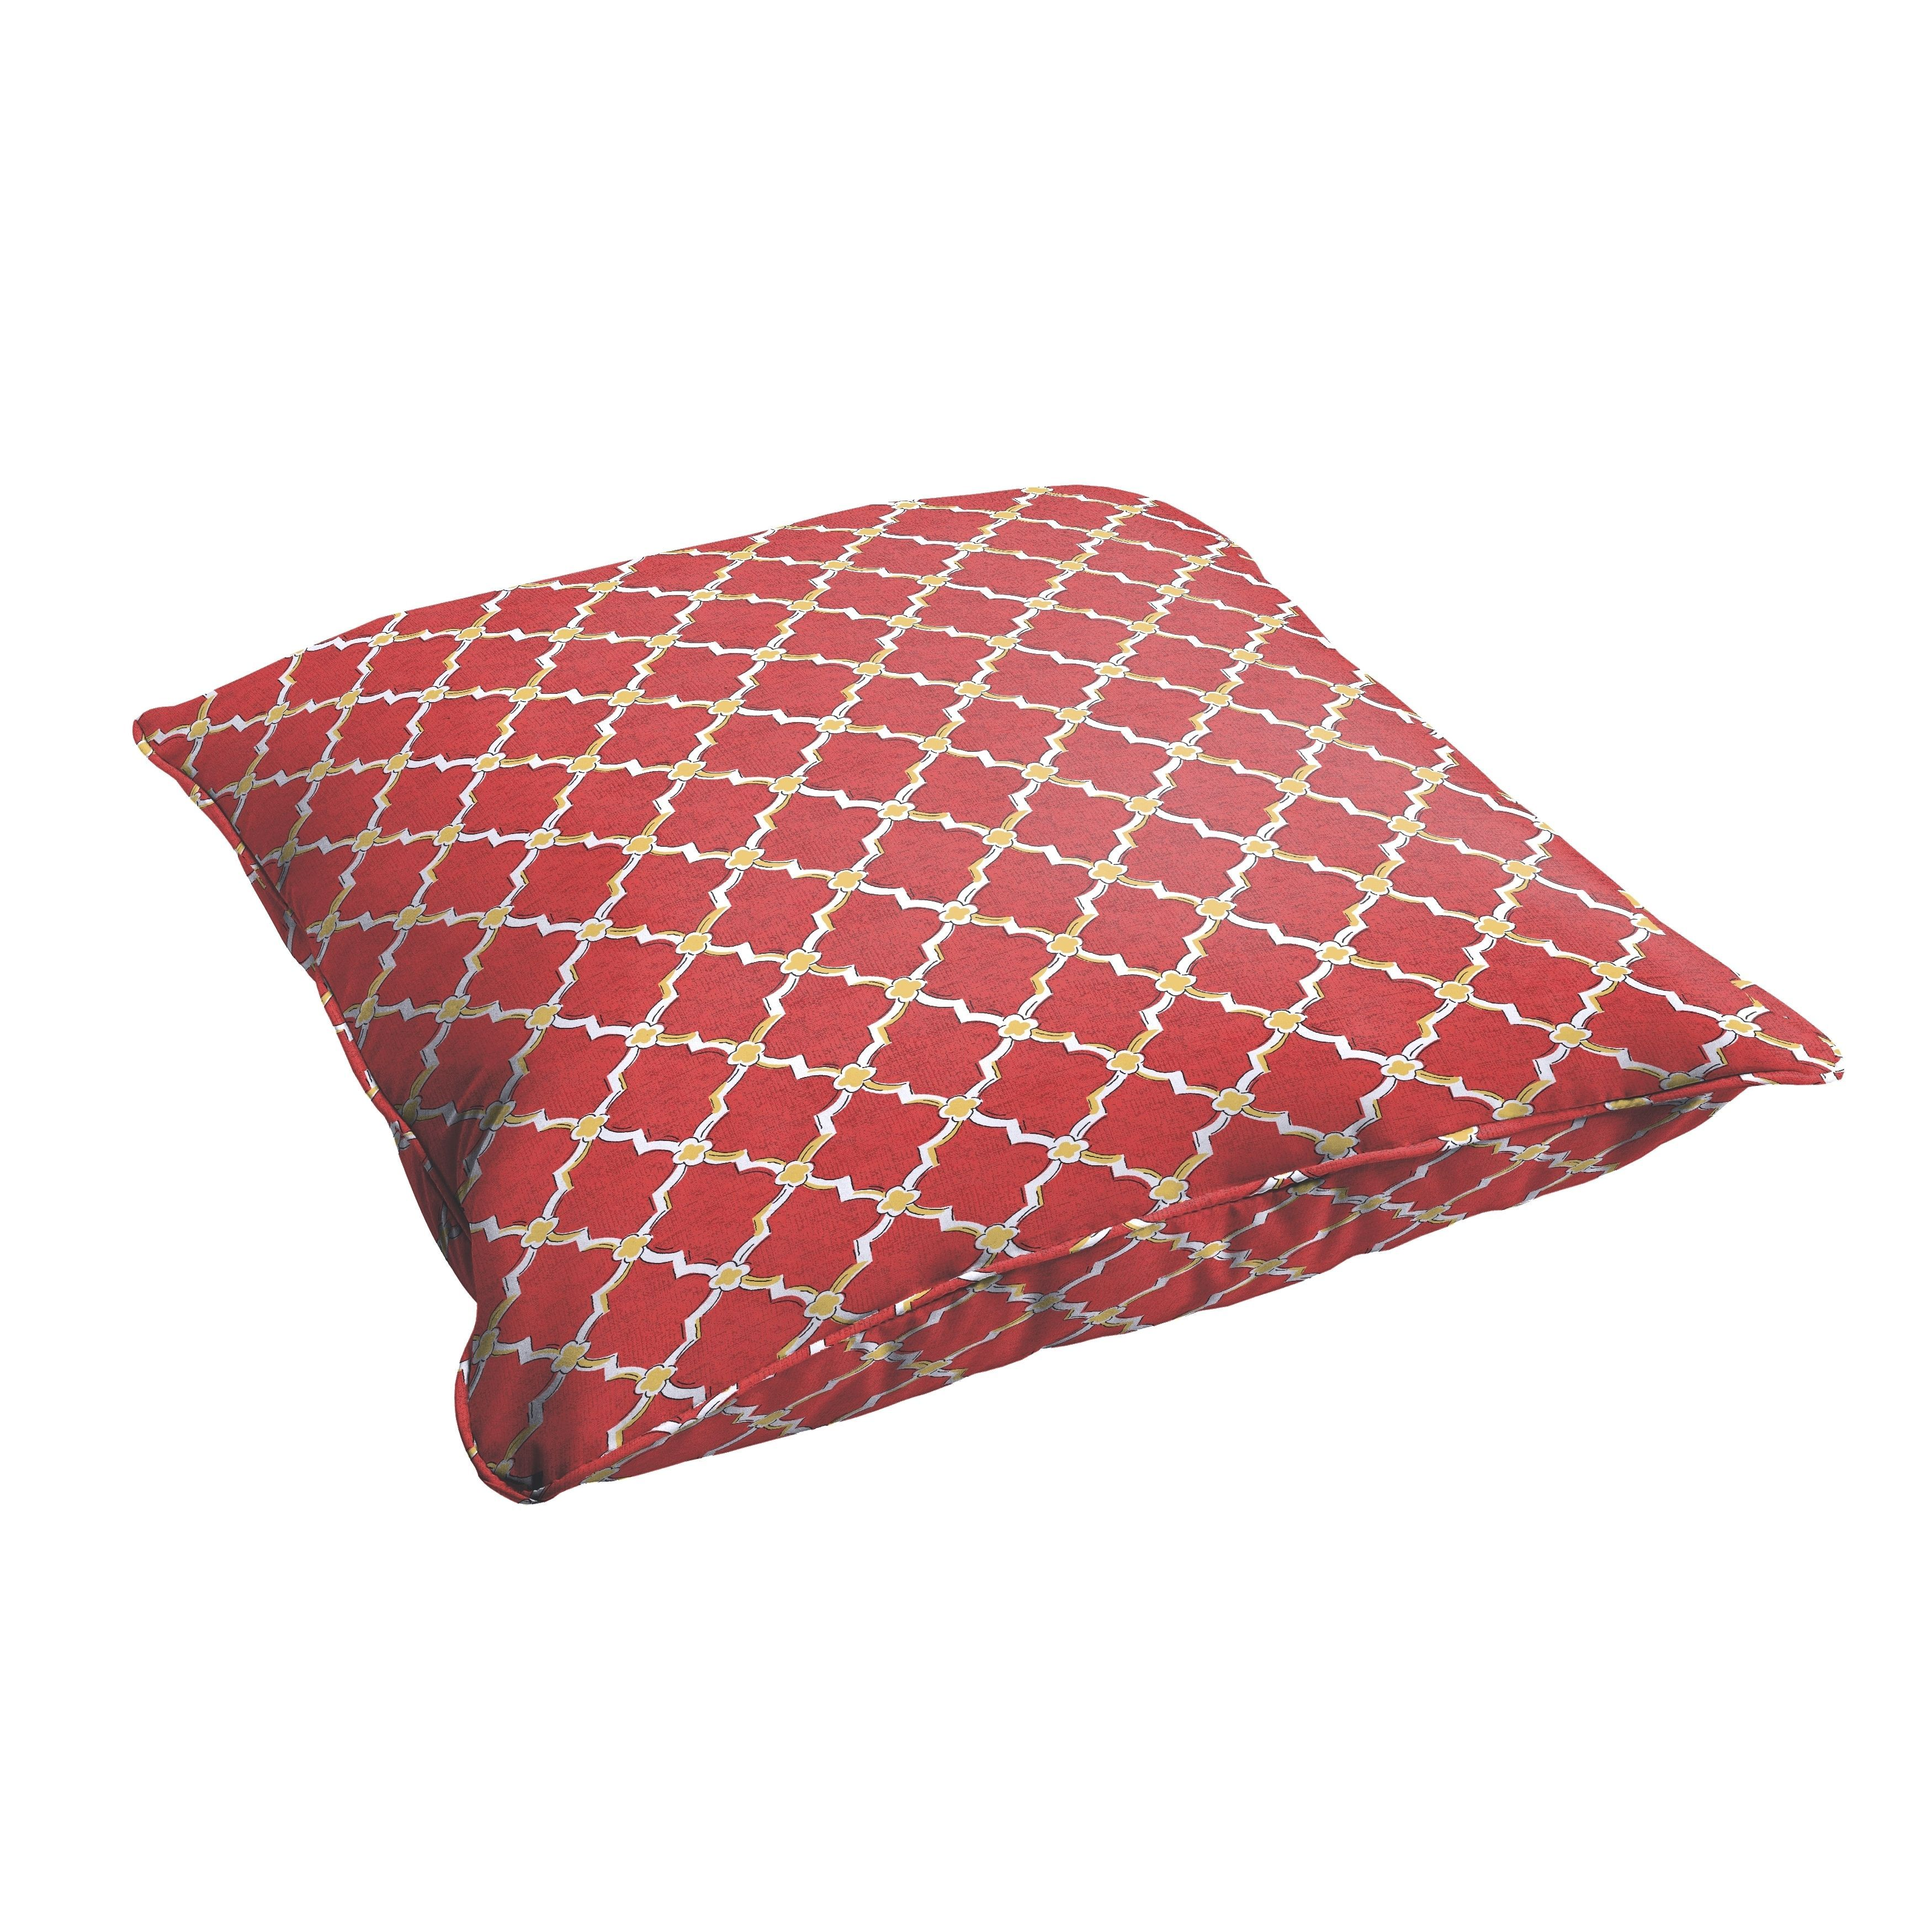 Selena Red Gold Berry 26 X Inch Indoor Outdoor Corded Edge Floor Pillow Osps4795 Fabric Cushion